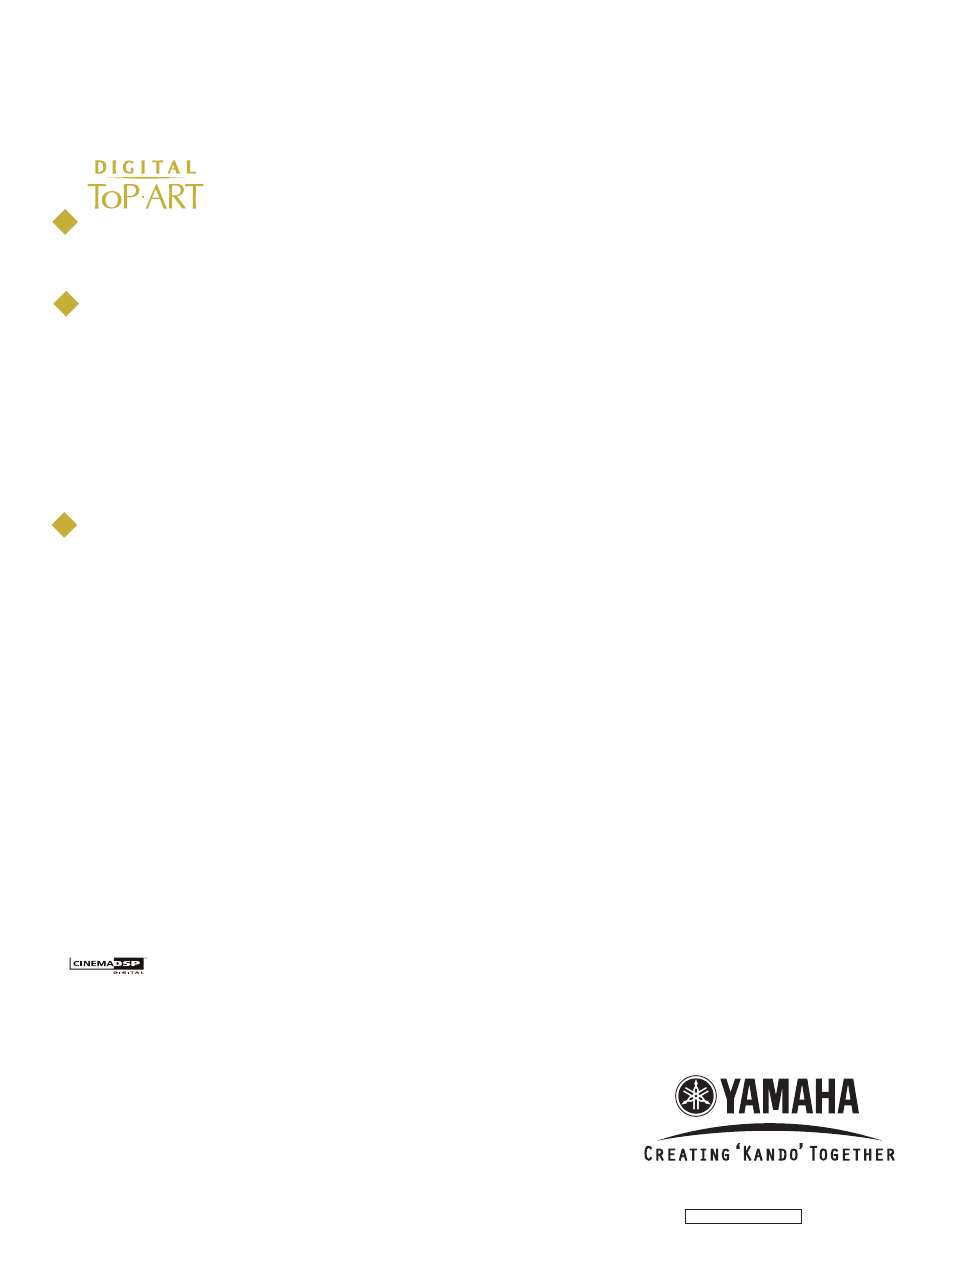 Rx-v640 notable features, 10/10 (r/l/t/k), Yamaha